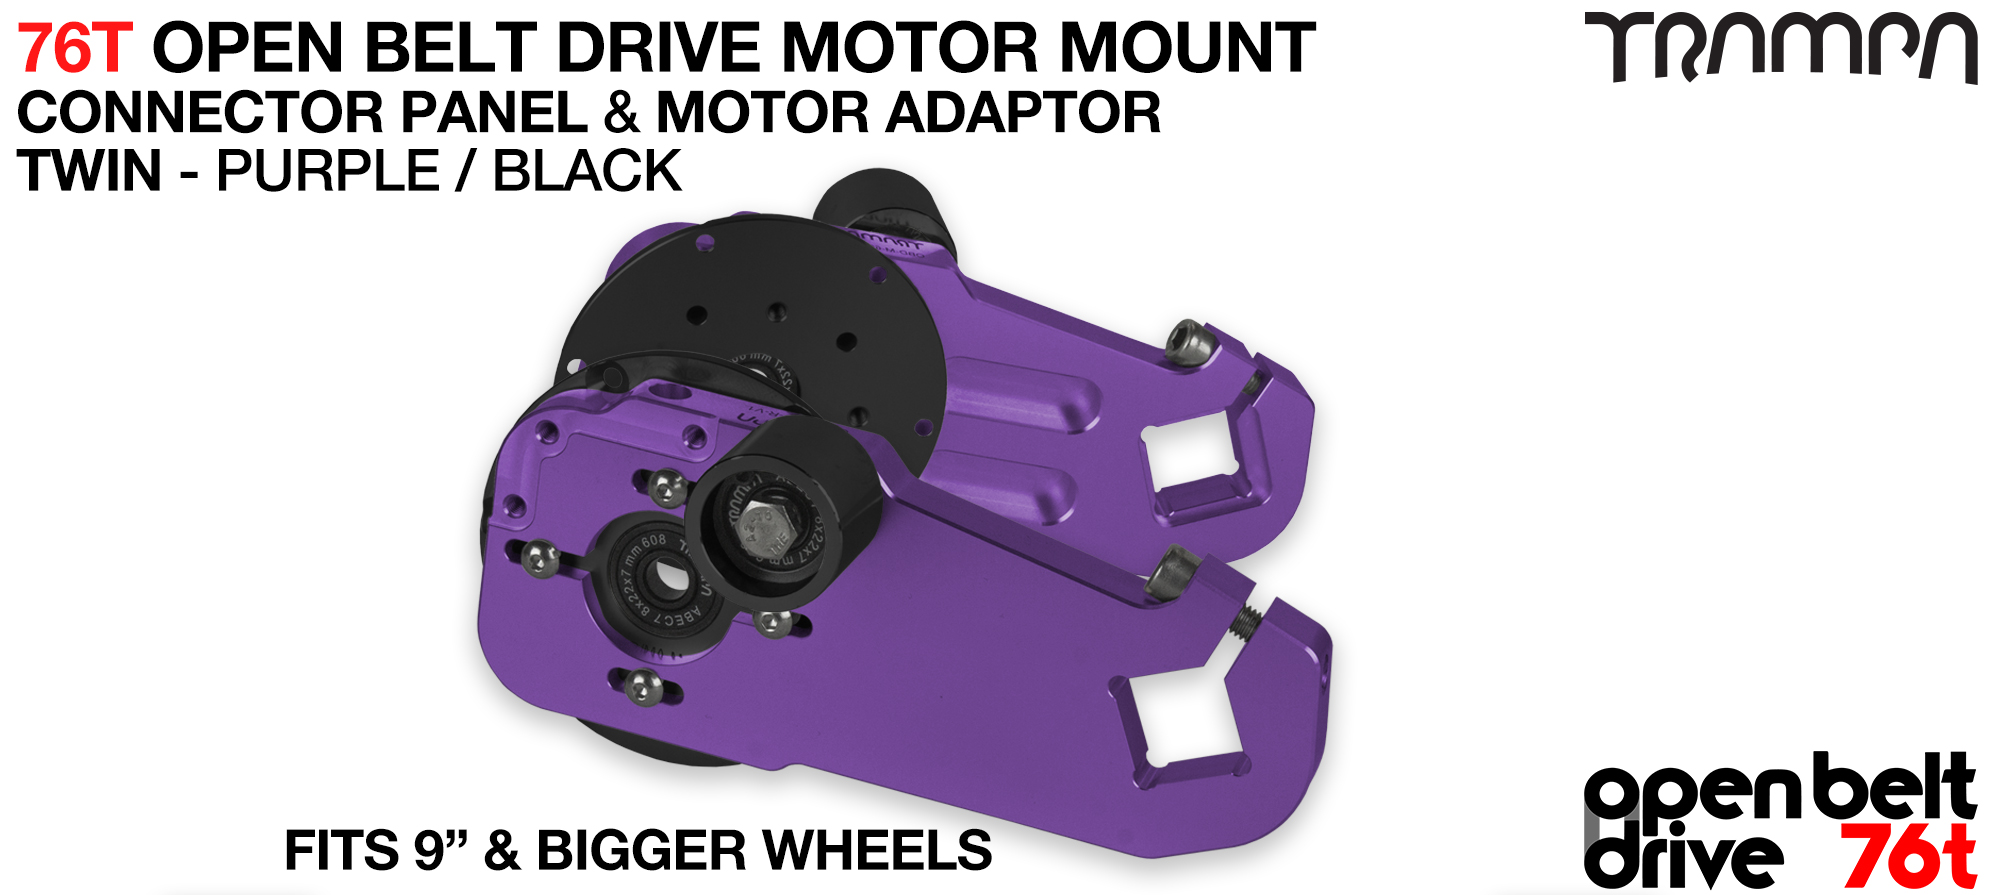 76T Open Belt Drive Motor Mount & Motor Adaptor - TWIN PURPLE